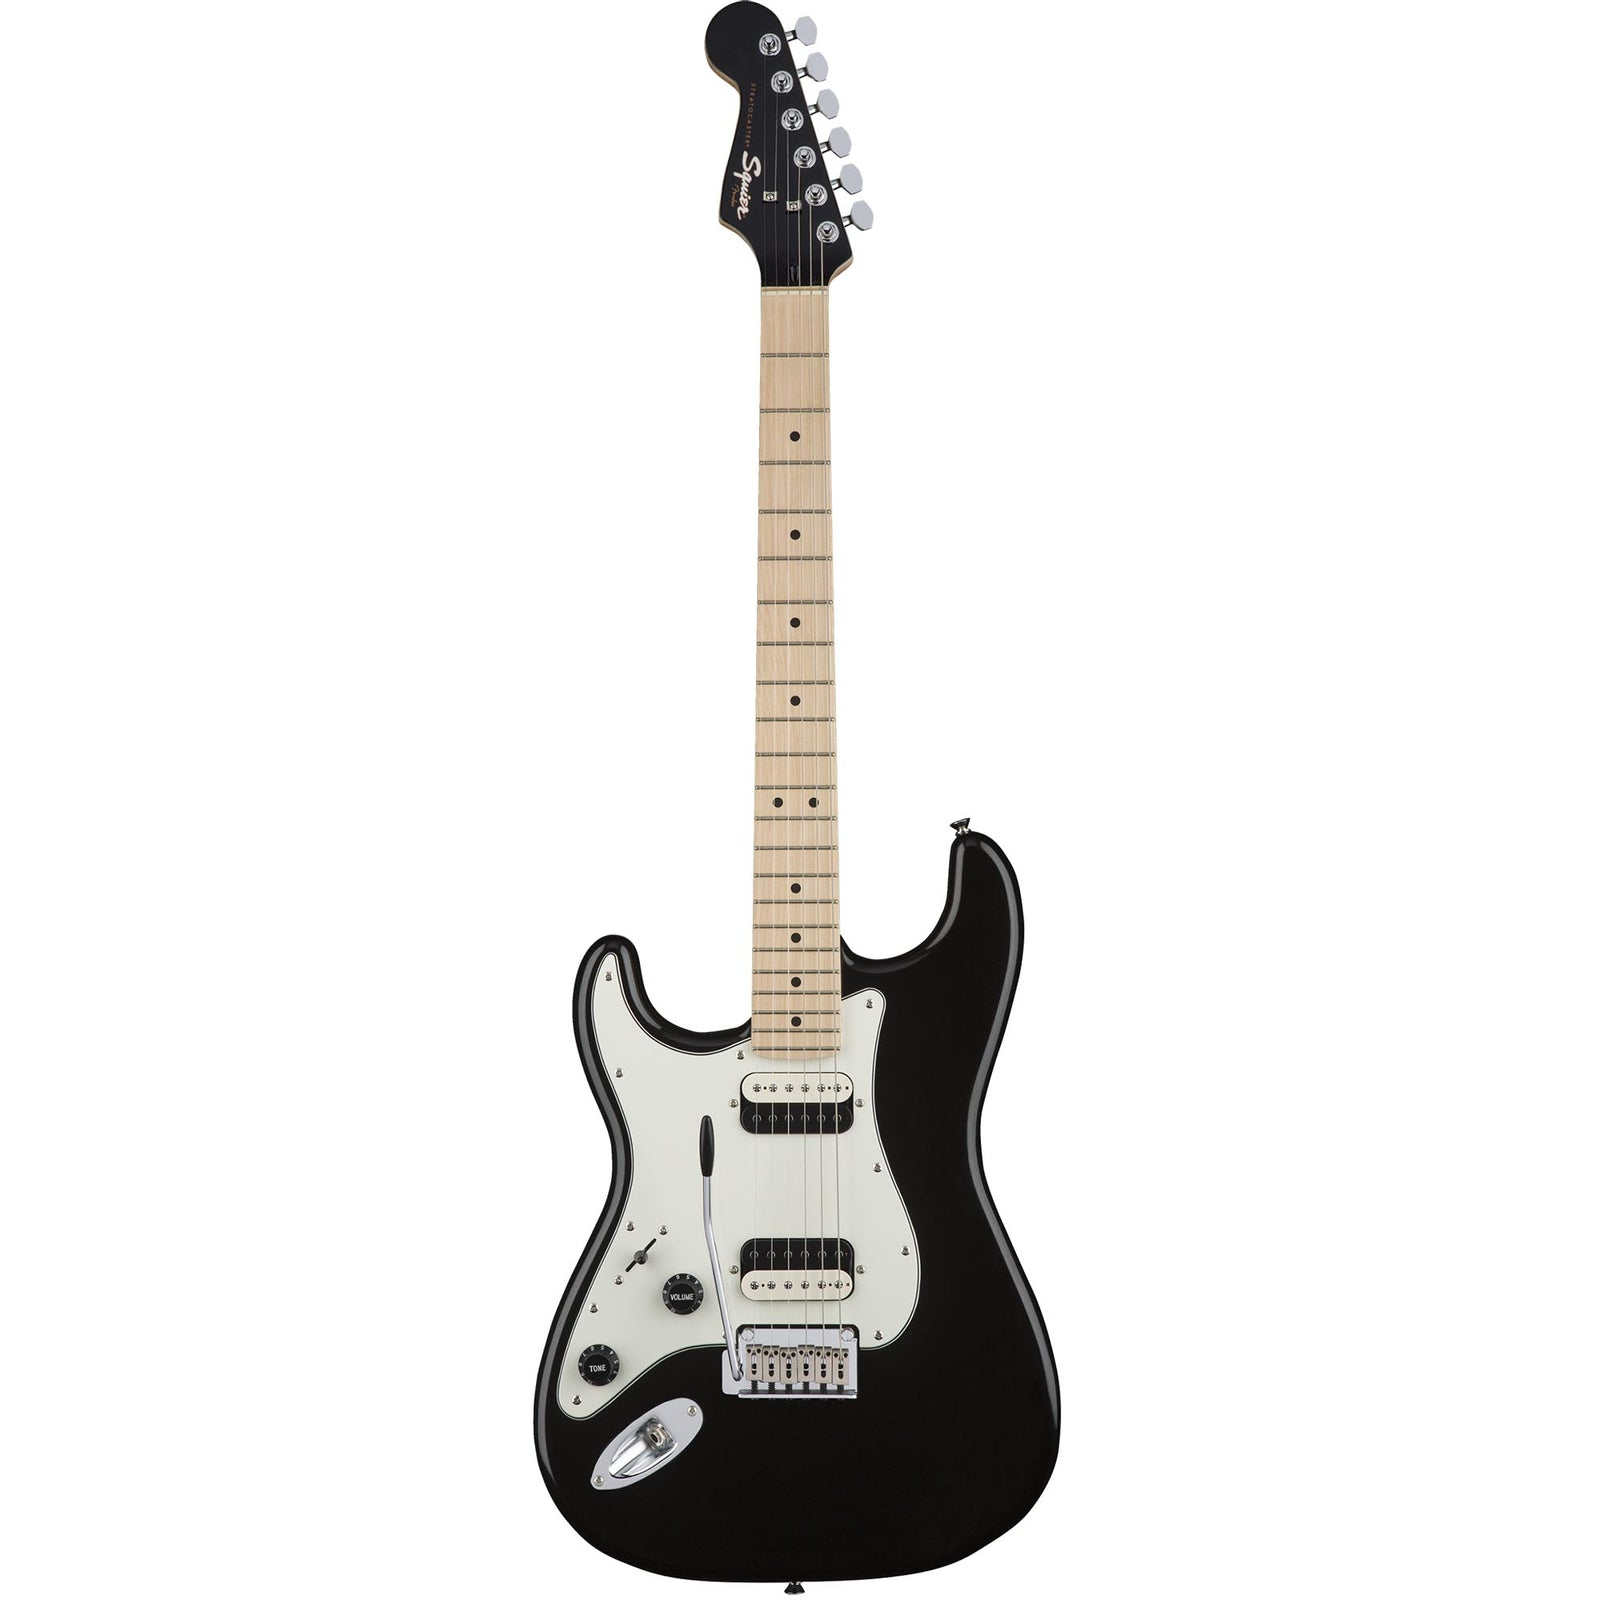 Squier Contemporary Stratocaster HH Left-Handed - Maple - Black Metallic